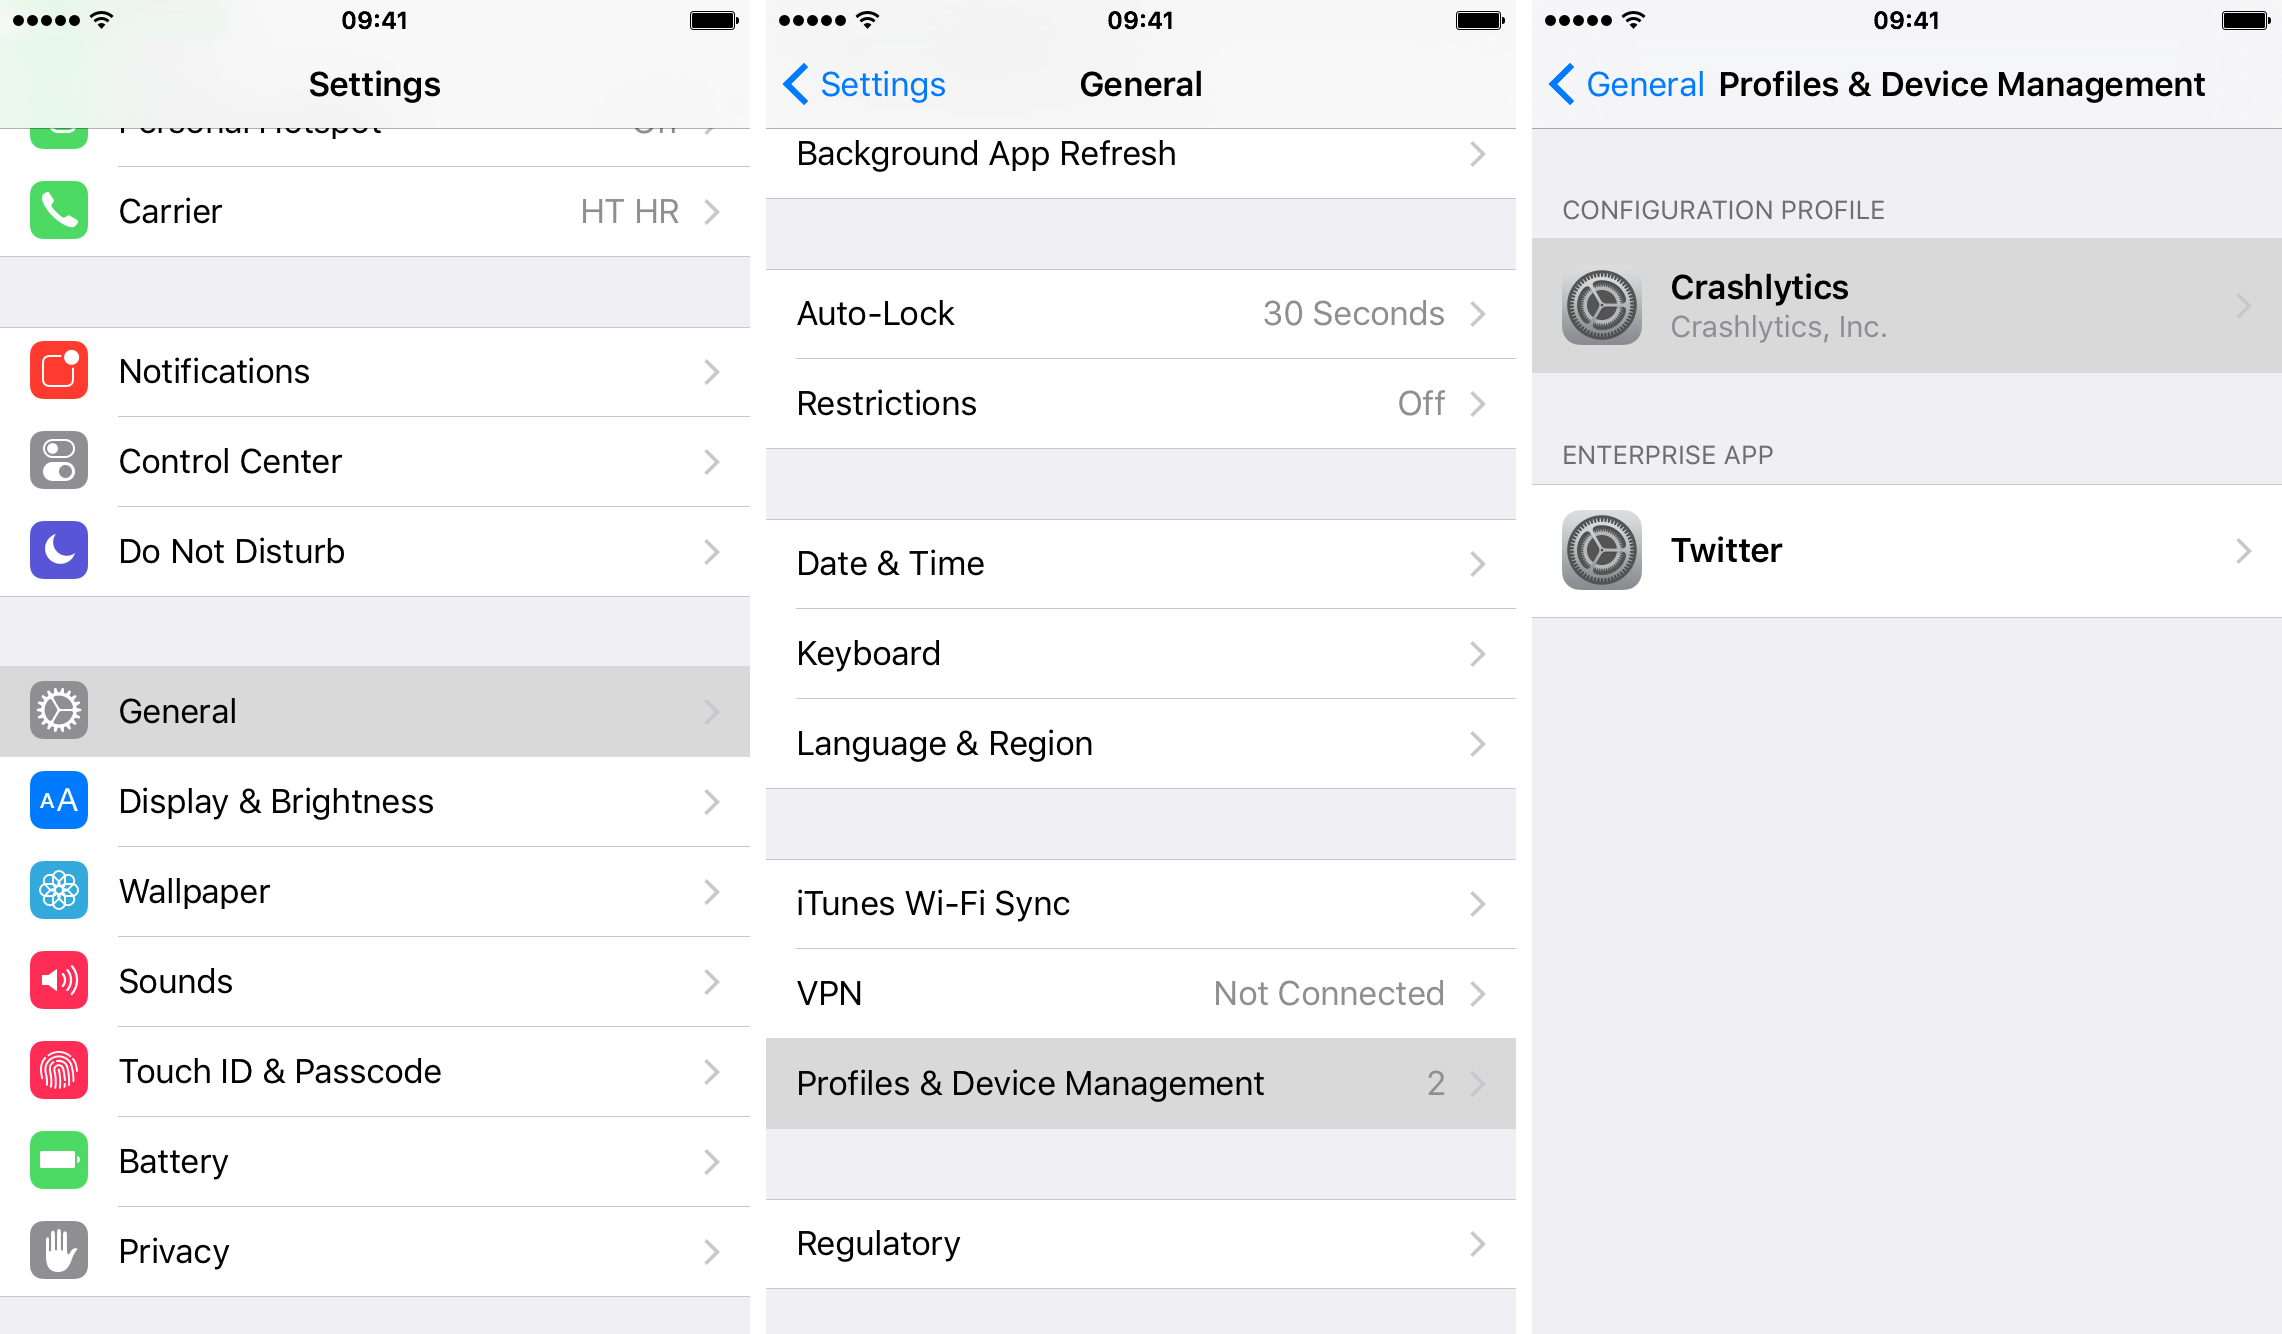 How to remove iOS configuration profiles